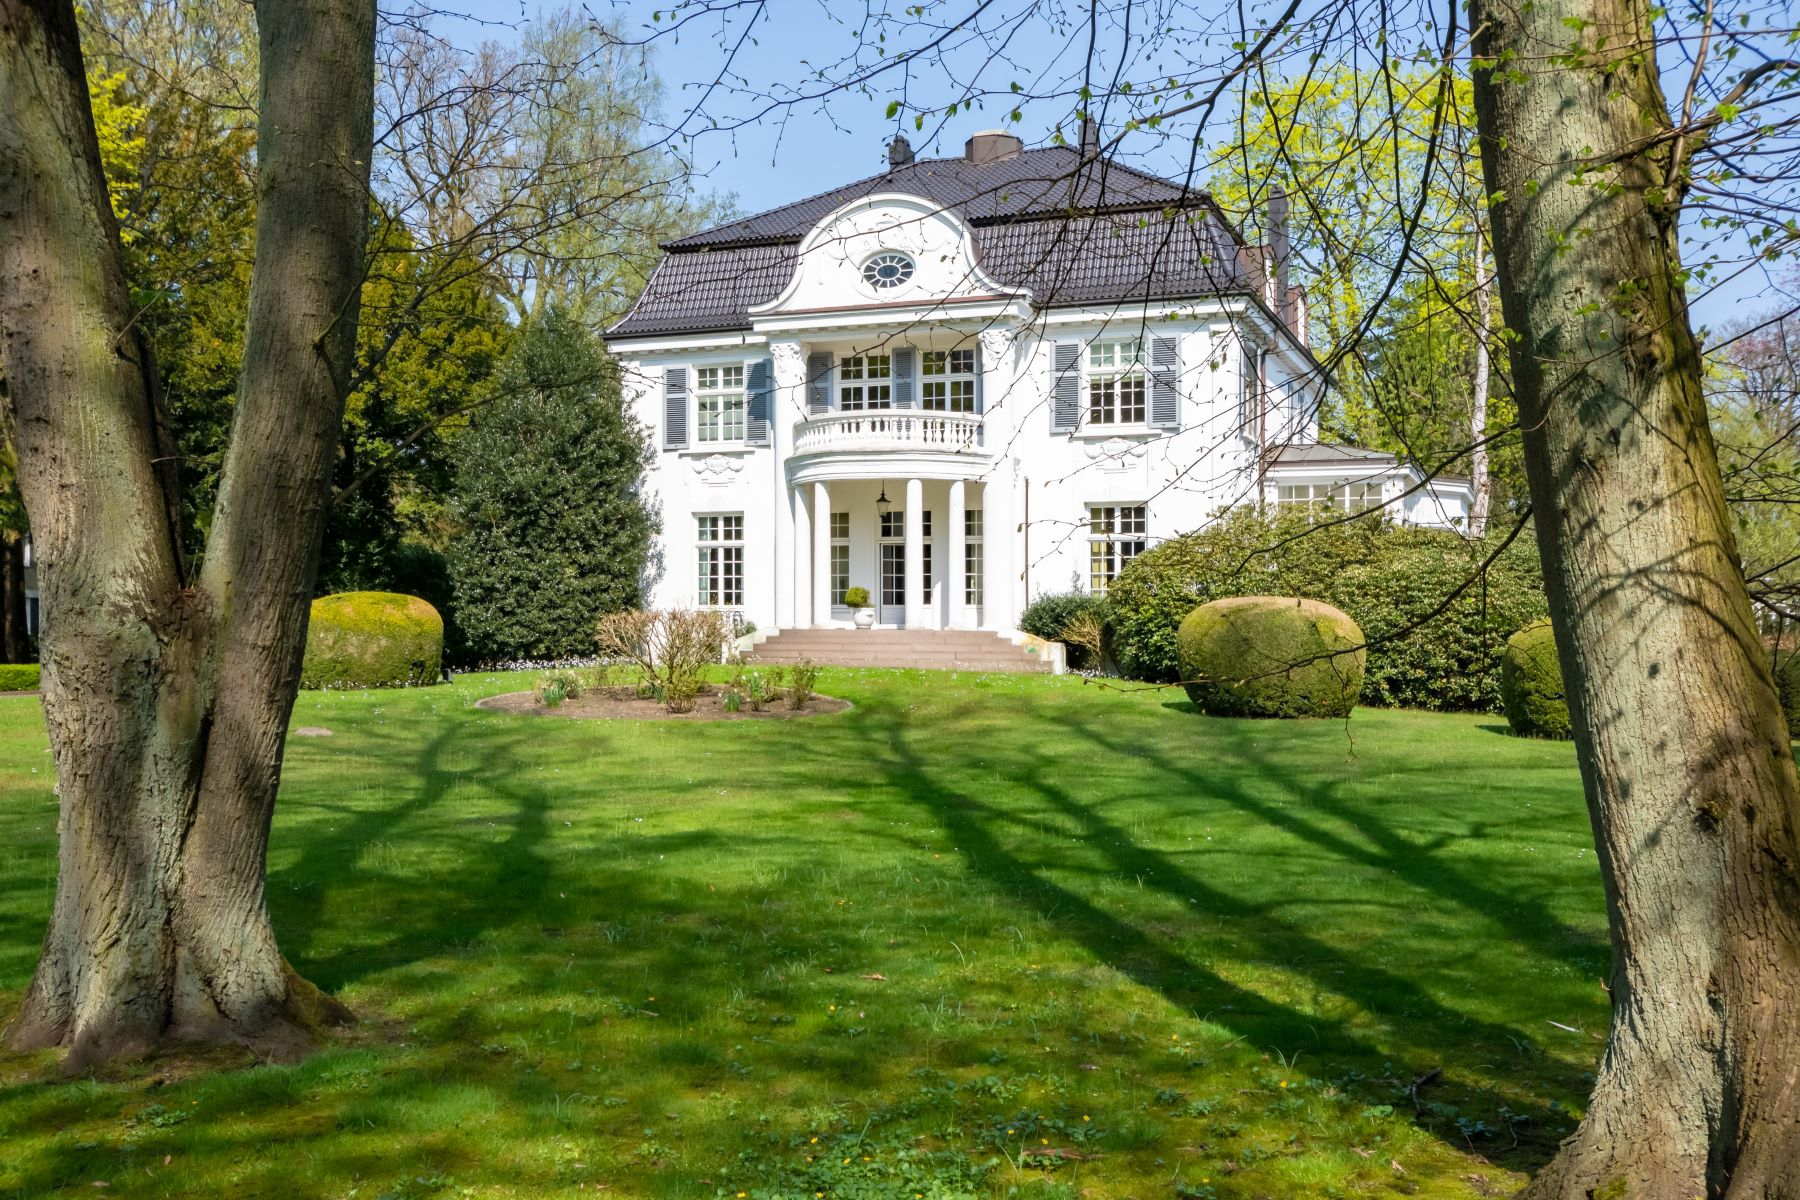 Single Family Home for Sale at Neo-classical villa for the highest demands Elbchaussee 454 Hamburg, Hamburg 22587 Germany